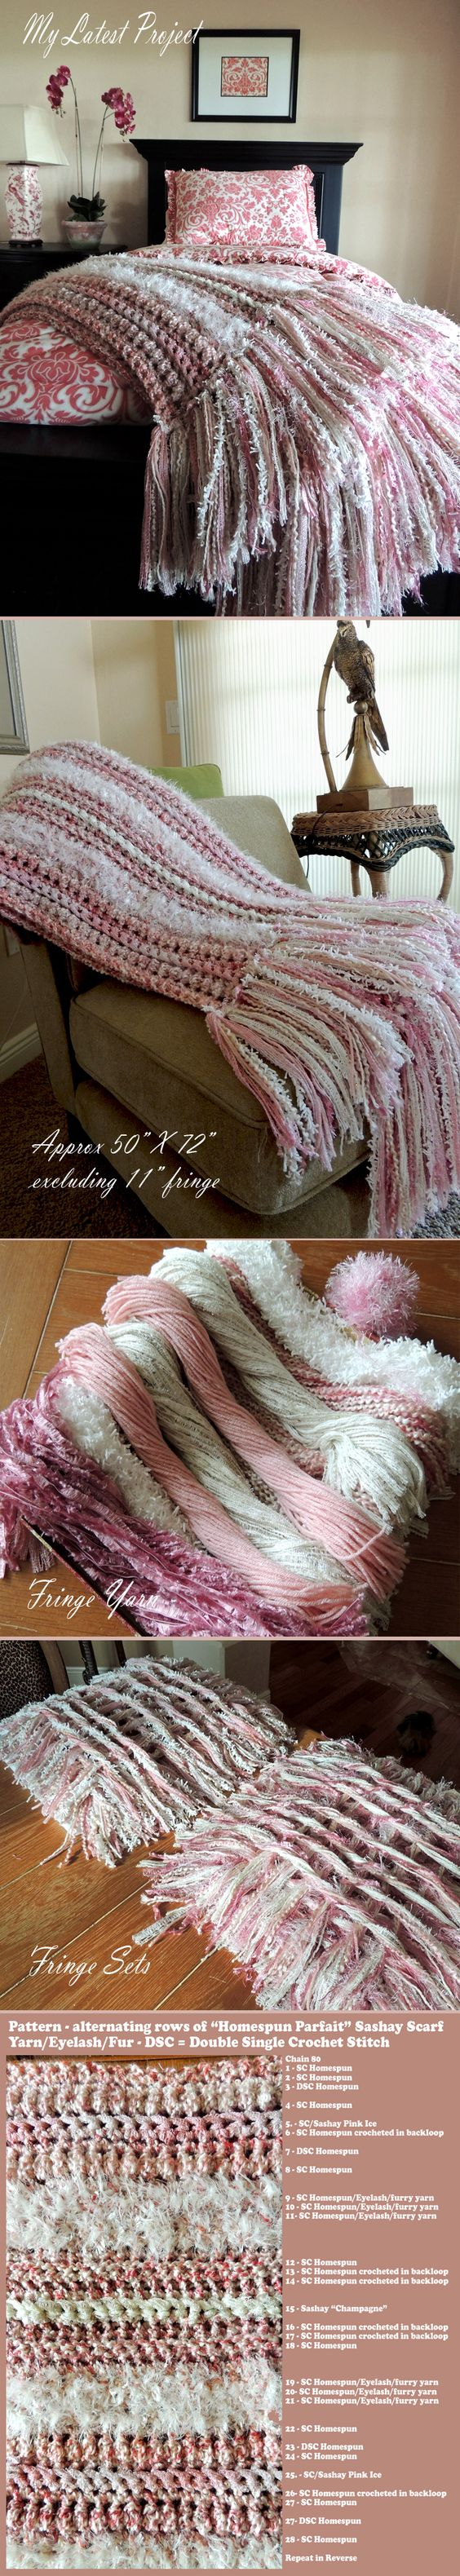 """My latest Crochet Addiction Creation. I JUST LOVE making these chunky, cozy and very simple afghans. Done in pinks and whites I used Homespun Parfait for the main color, a combo of 1 strand each of short eyelash and a furry yarn for the white stripes and a few rows of Sashay Scarf yarn for the contrasting stripes. I added an 11"""" fringe made up of about 8 different yarns (130 total fringe sets). Finished size-50"""" X 94"""" with fringe, Now onto the next one!"""